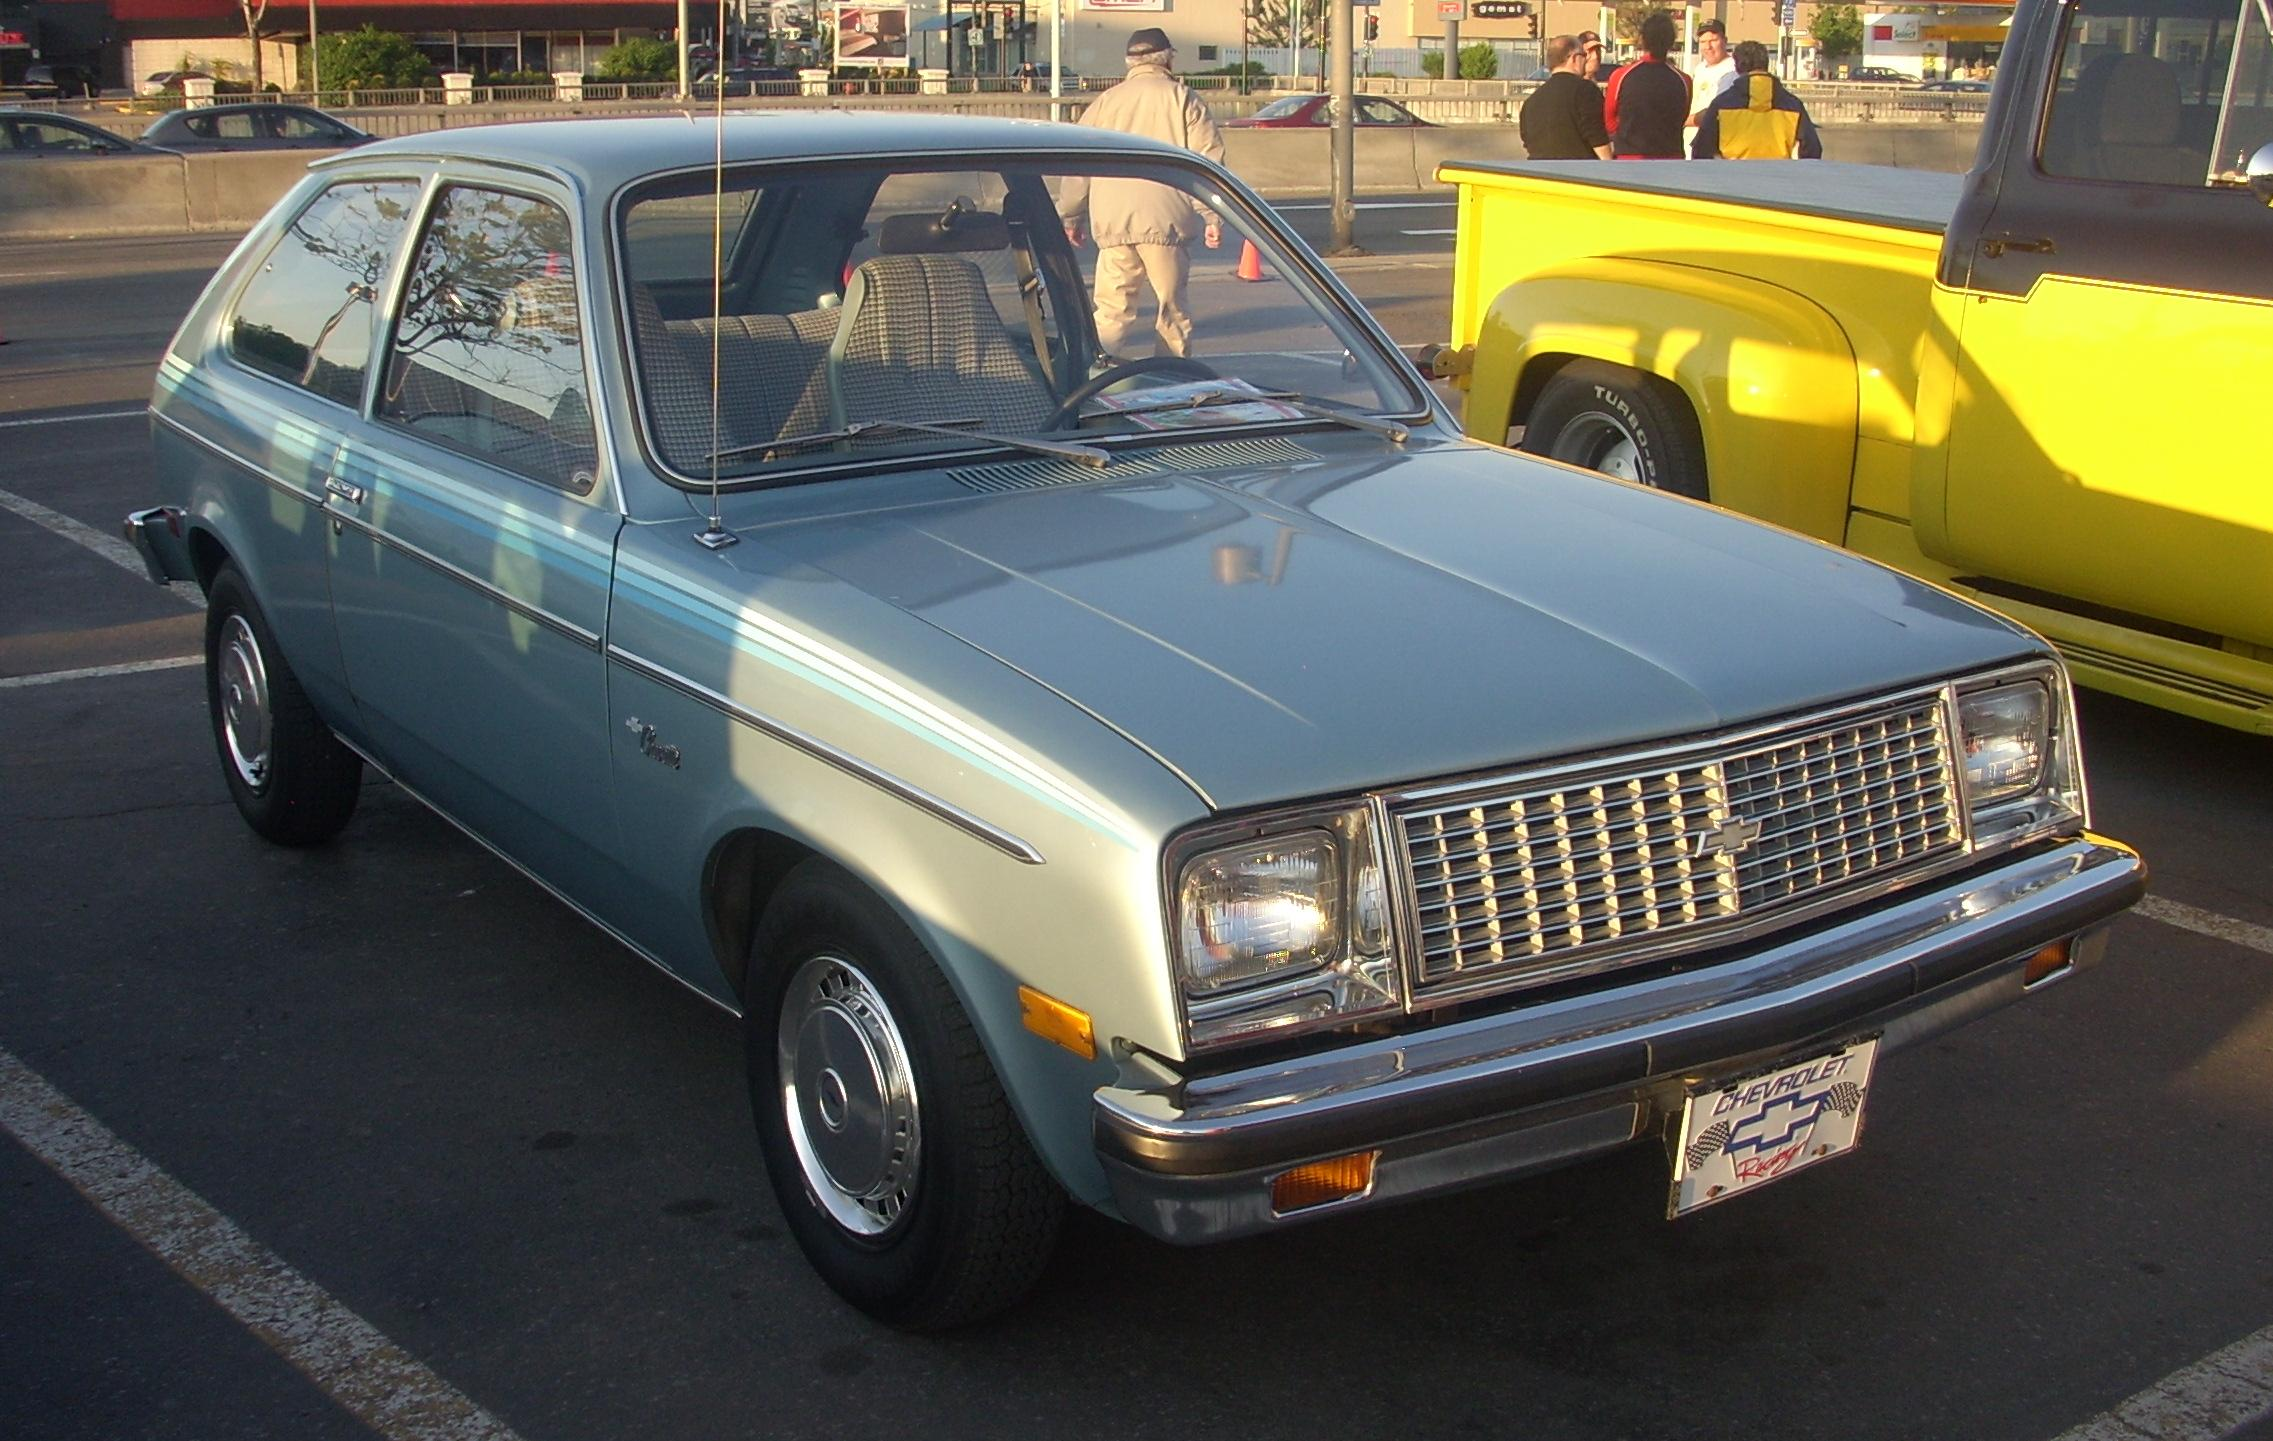 file 79 chevrolet chevette 3 door orange julep jpg wikimedia commons https commons wikimedia org wiki file 2779 chevrolet chevette 3 door orange julep jpg